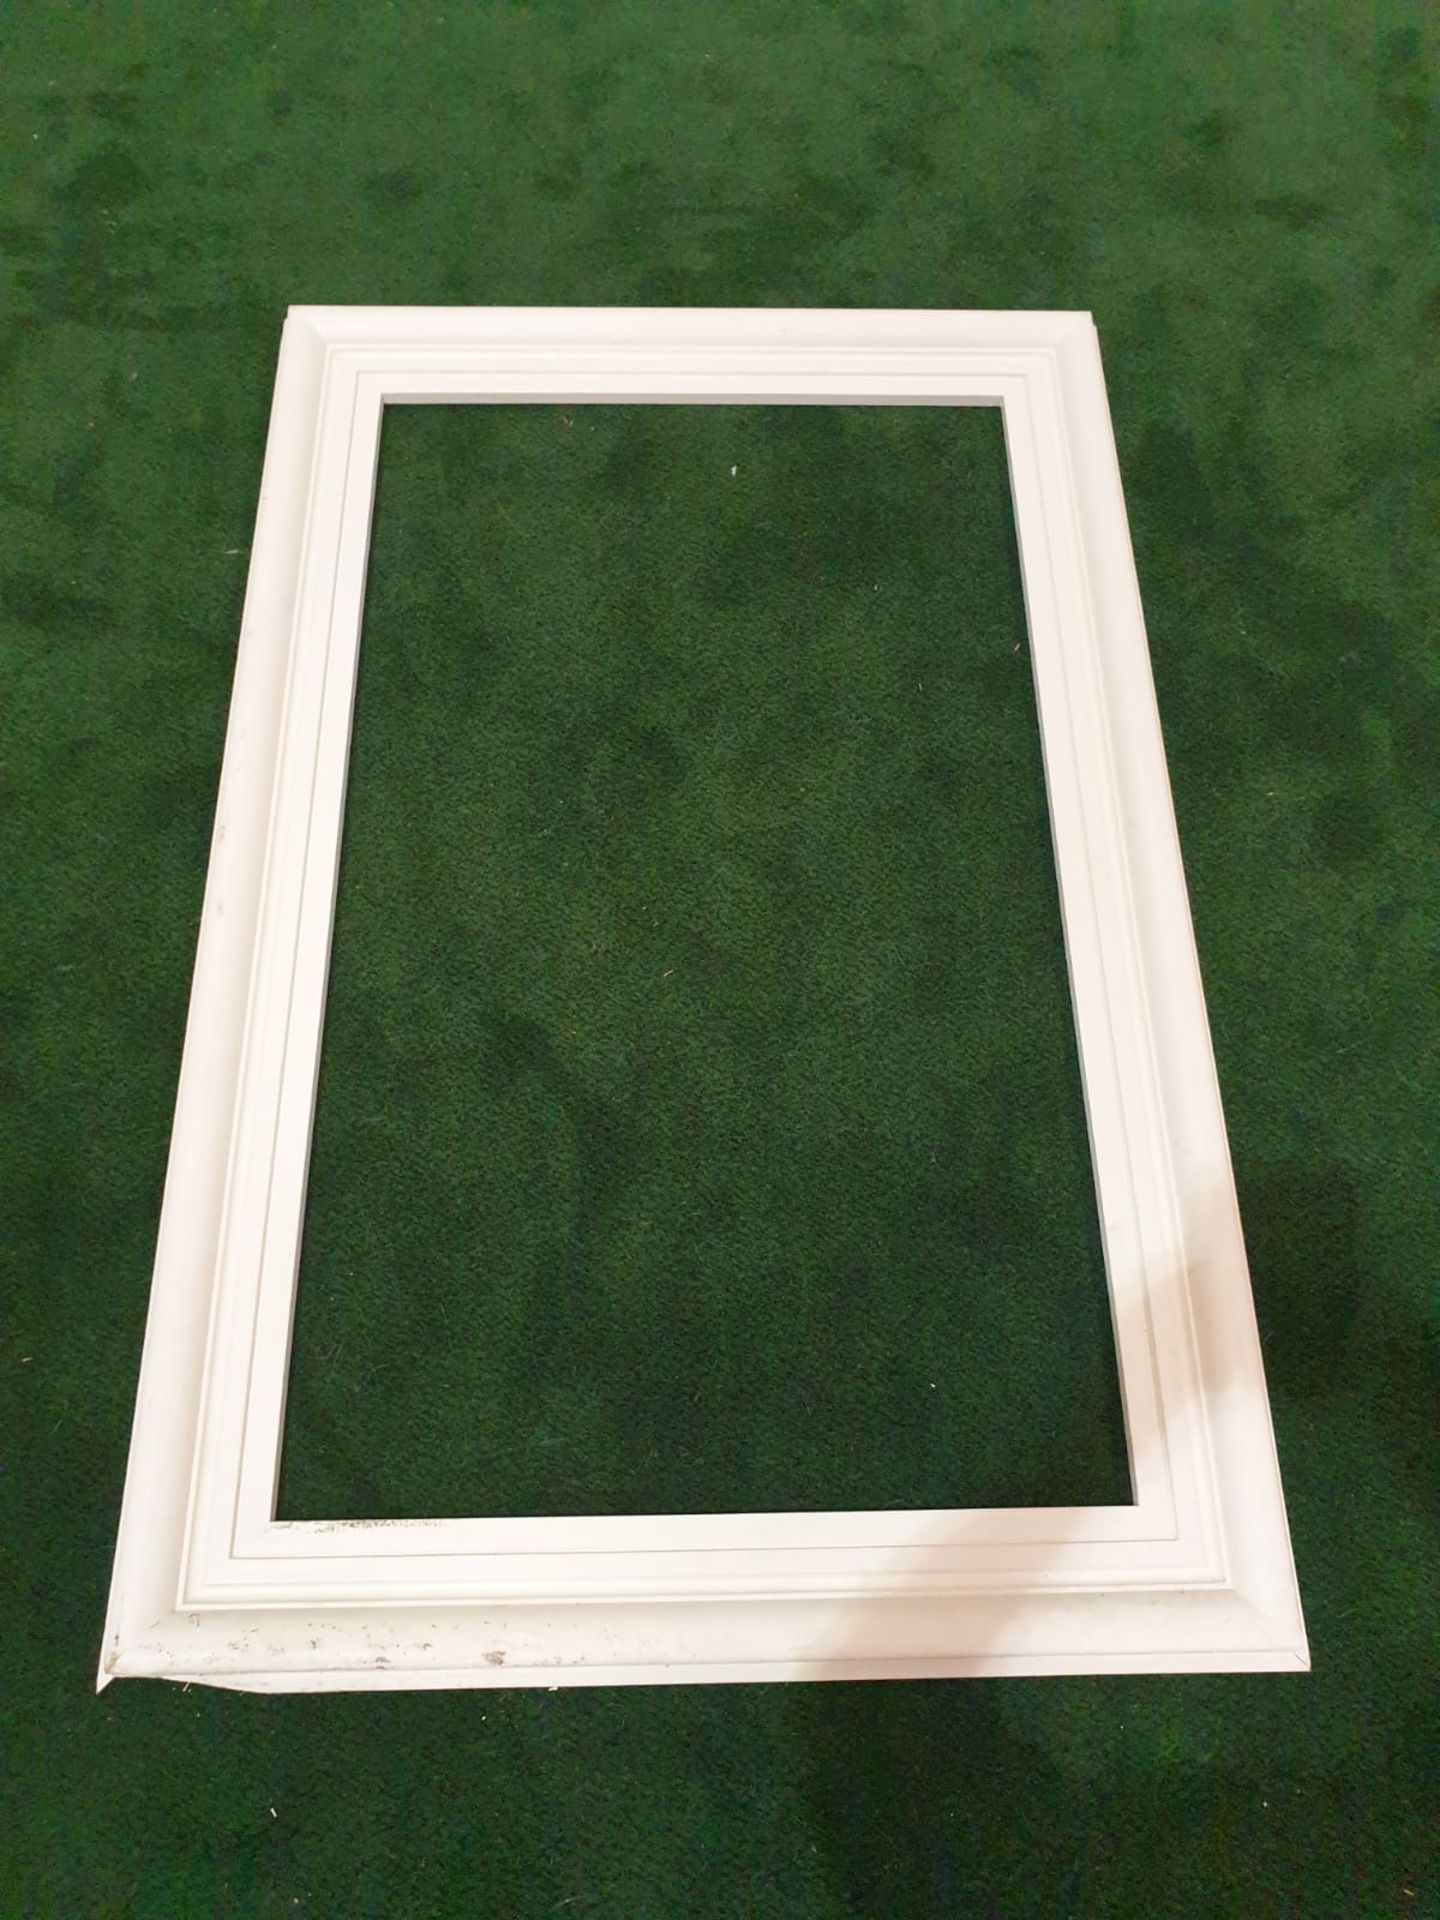 White picture frame 98 x 148cm - Image 2 of 4